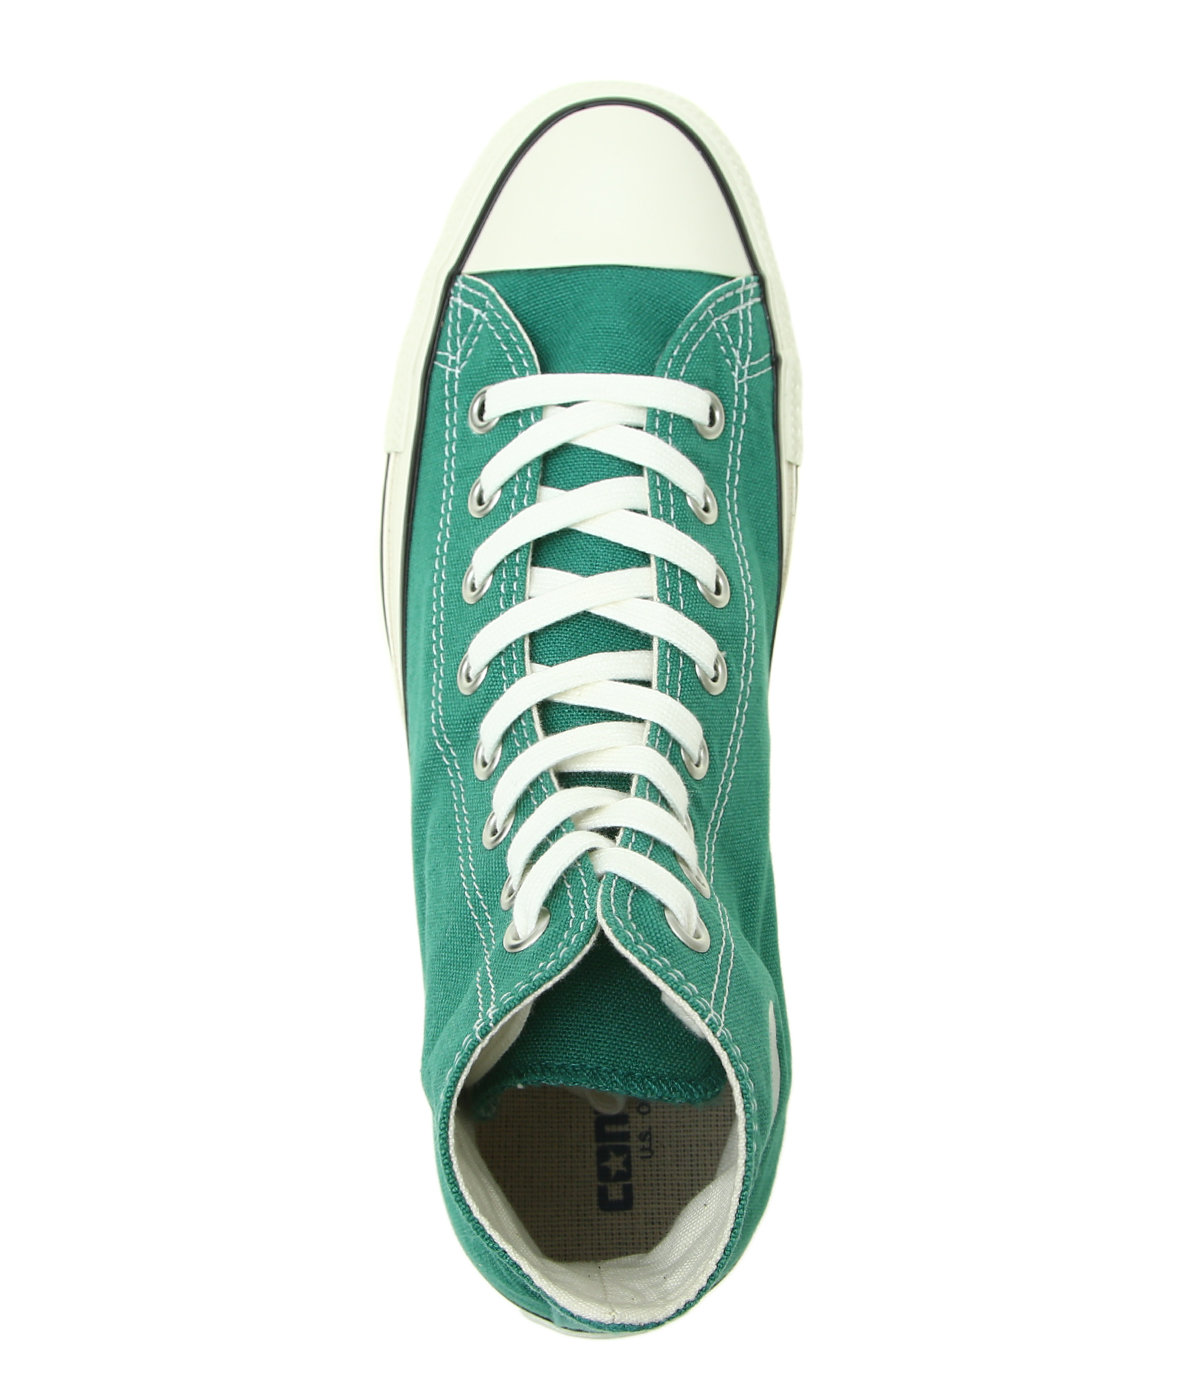 ALL STAR US COLORS HI